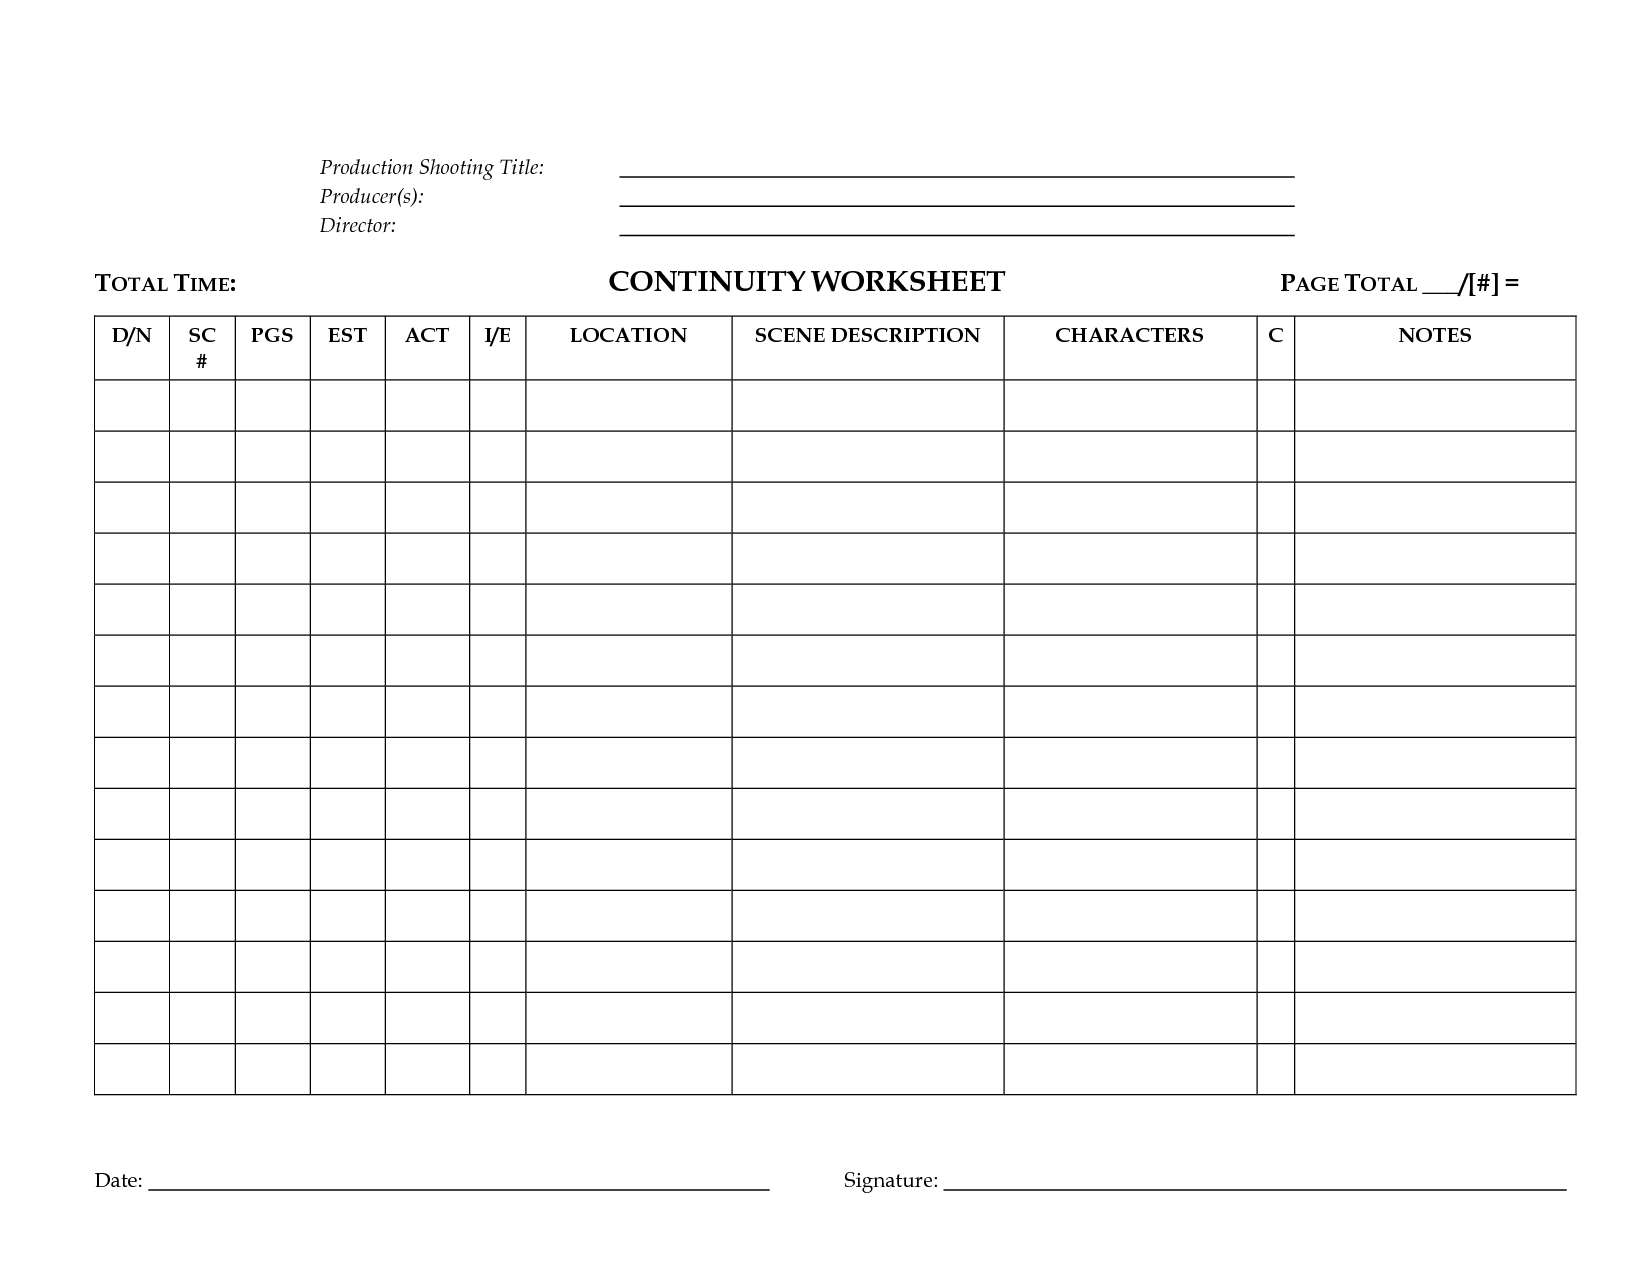 Continuity Worksheet For Film Or Tv Production By Megadox